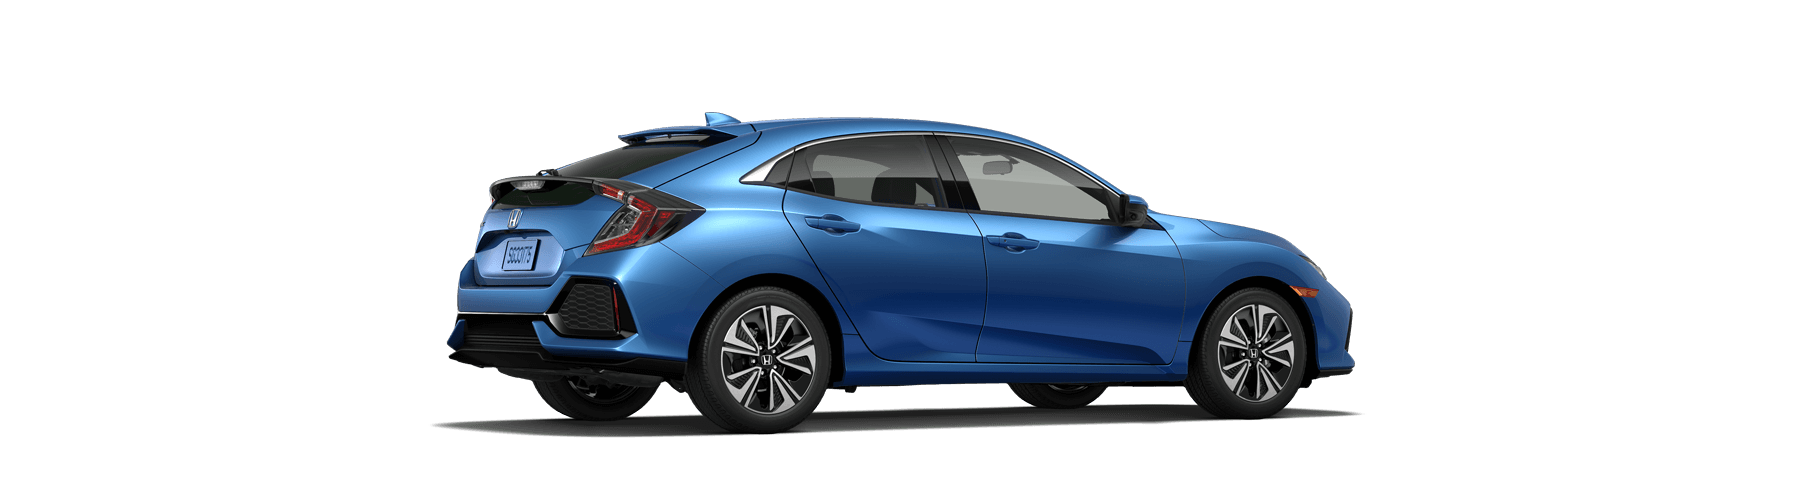 2018 Honda Civic Hatchback Rear Angle